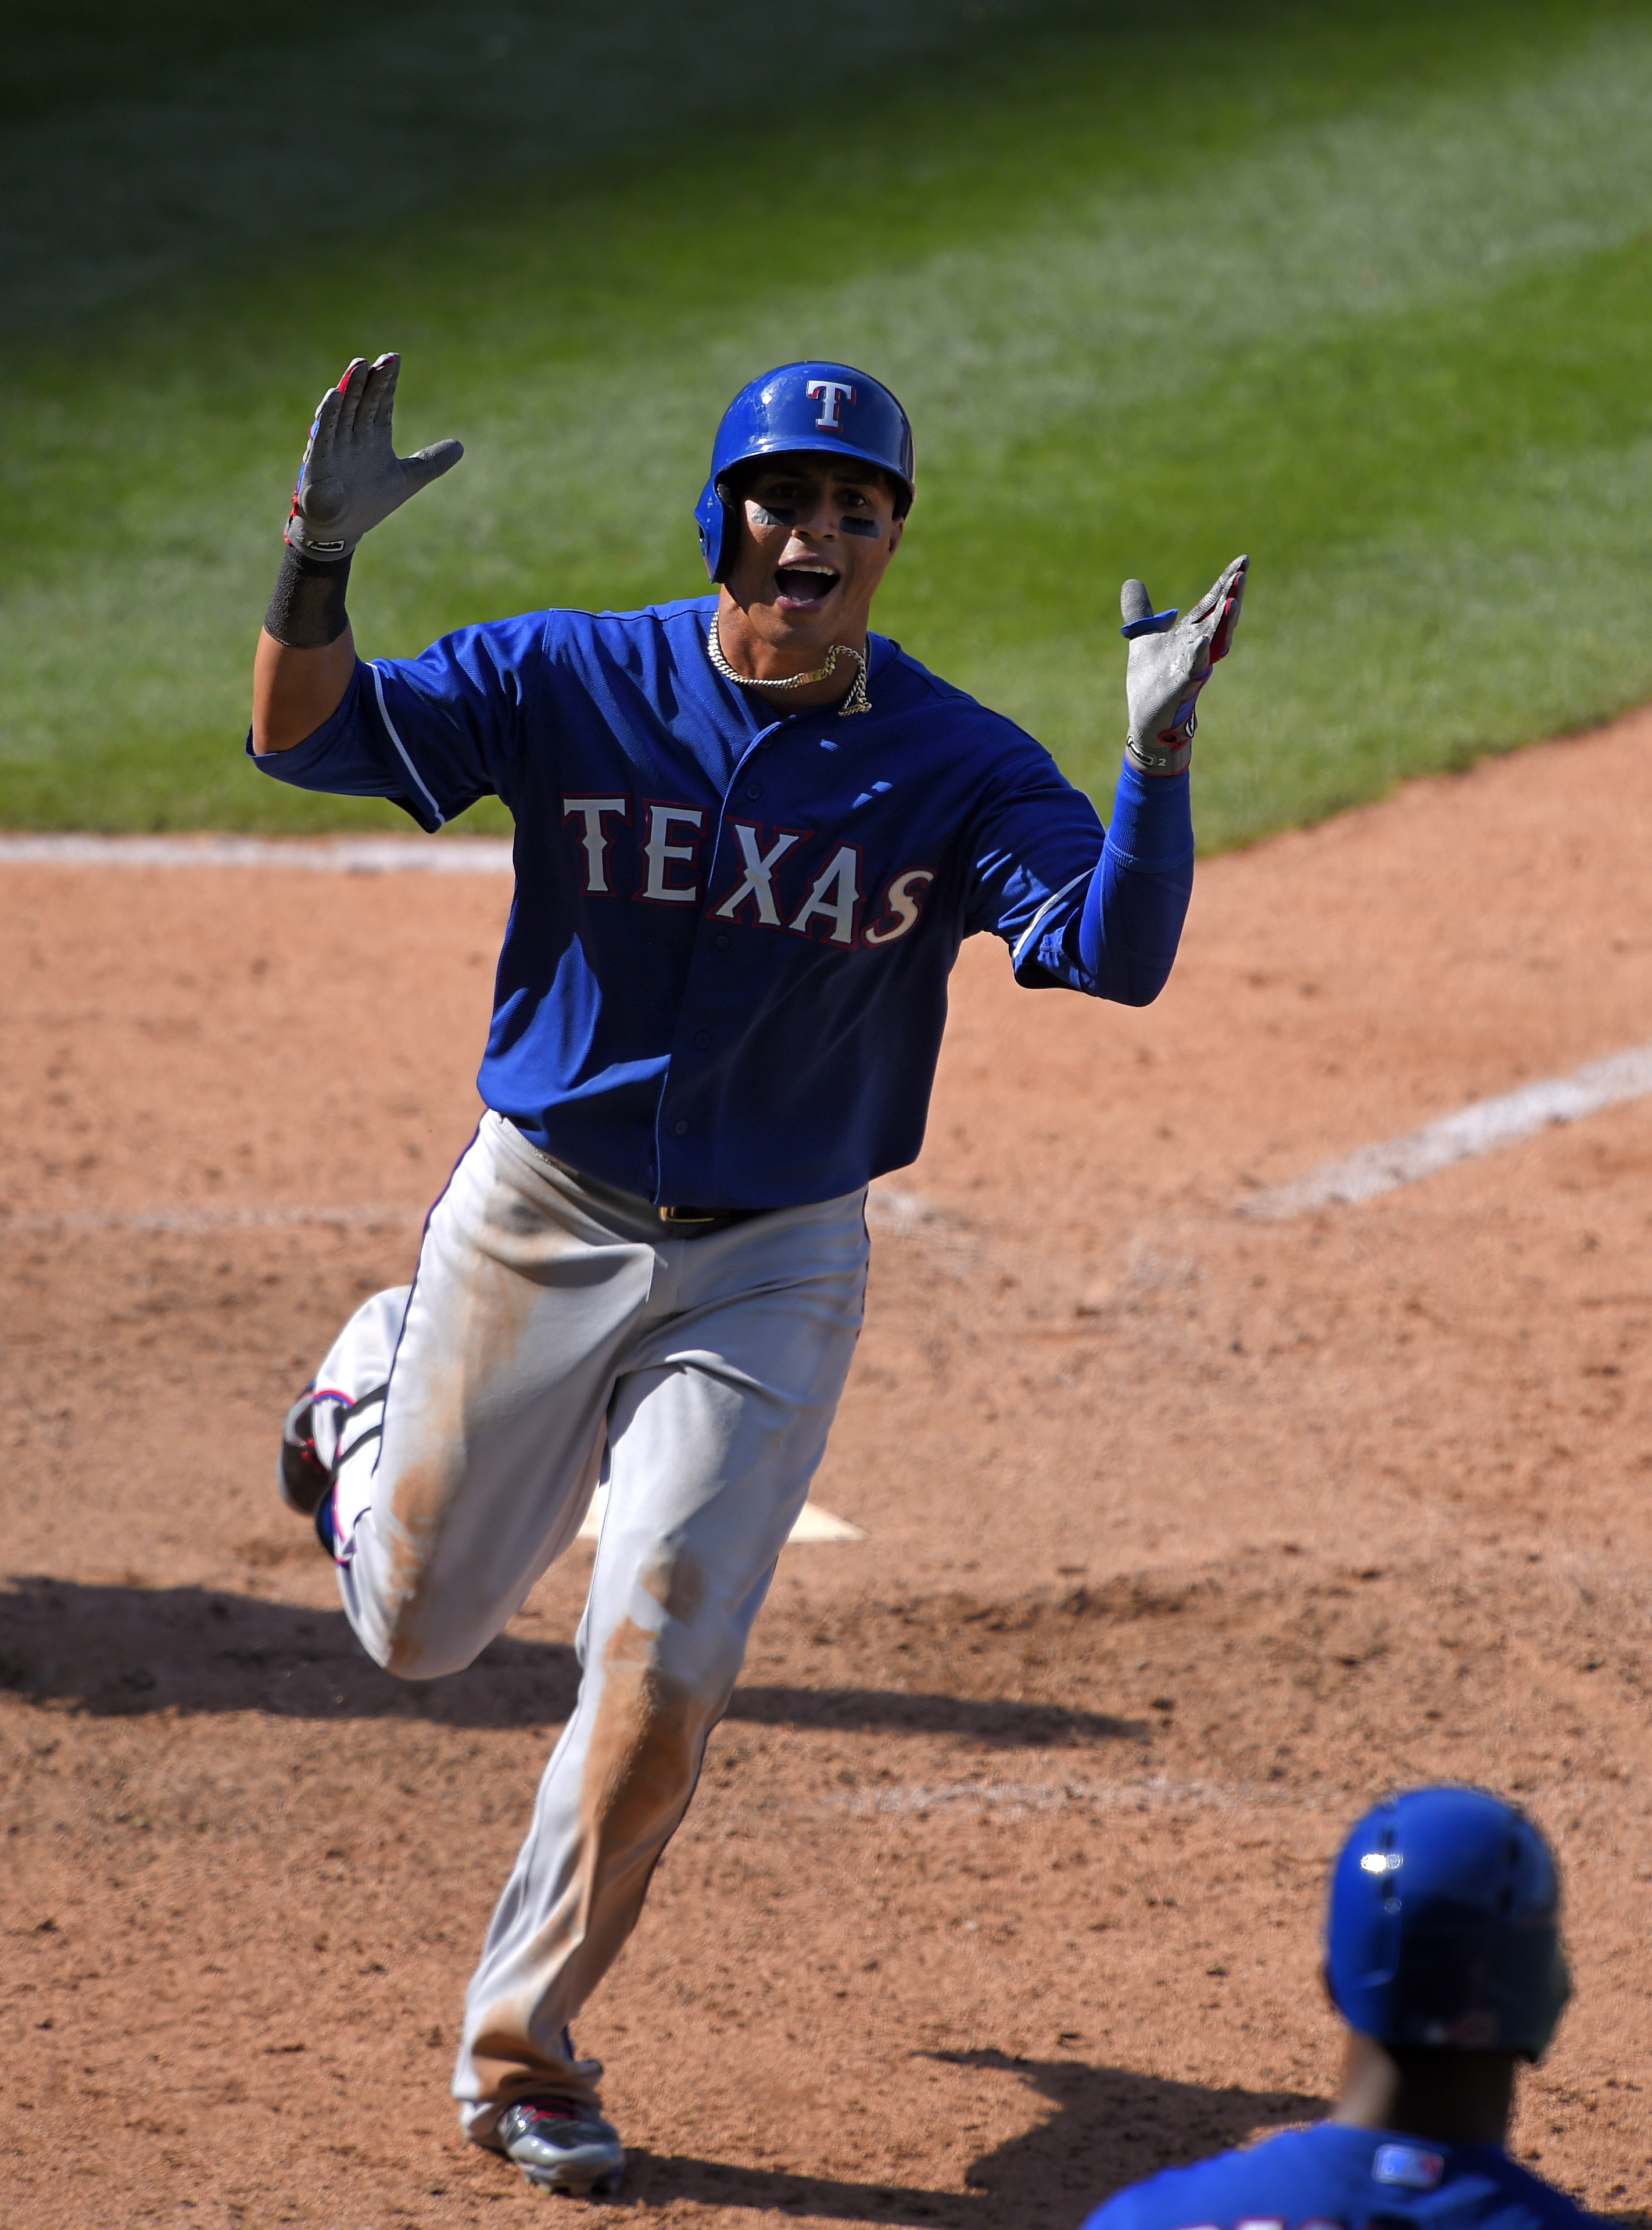 Texas Rangers' Leonys Martin, top, celebrates toward Carlos Peguero after hitting a solo home run during the 11th inning of a baseball game against the Los Angeles Angels, Sunday, April 26, 2015, in Anaheim, Calif. The Rangers won 5-4. (AP Photo/Mark J. T